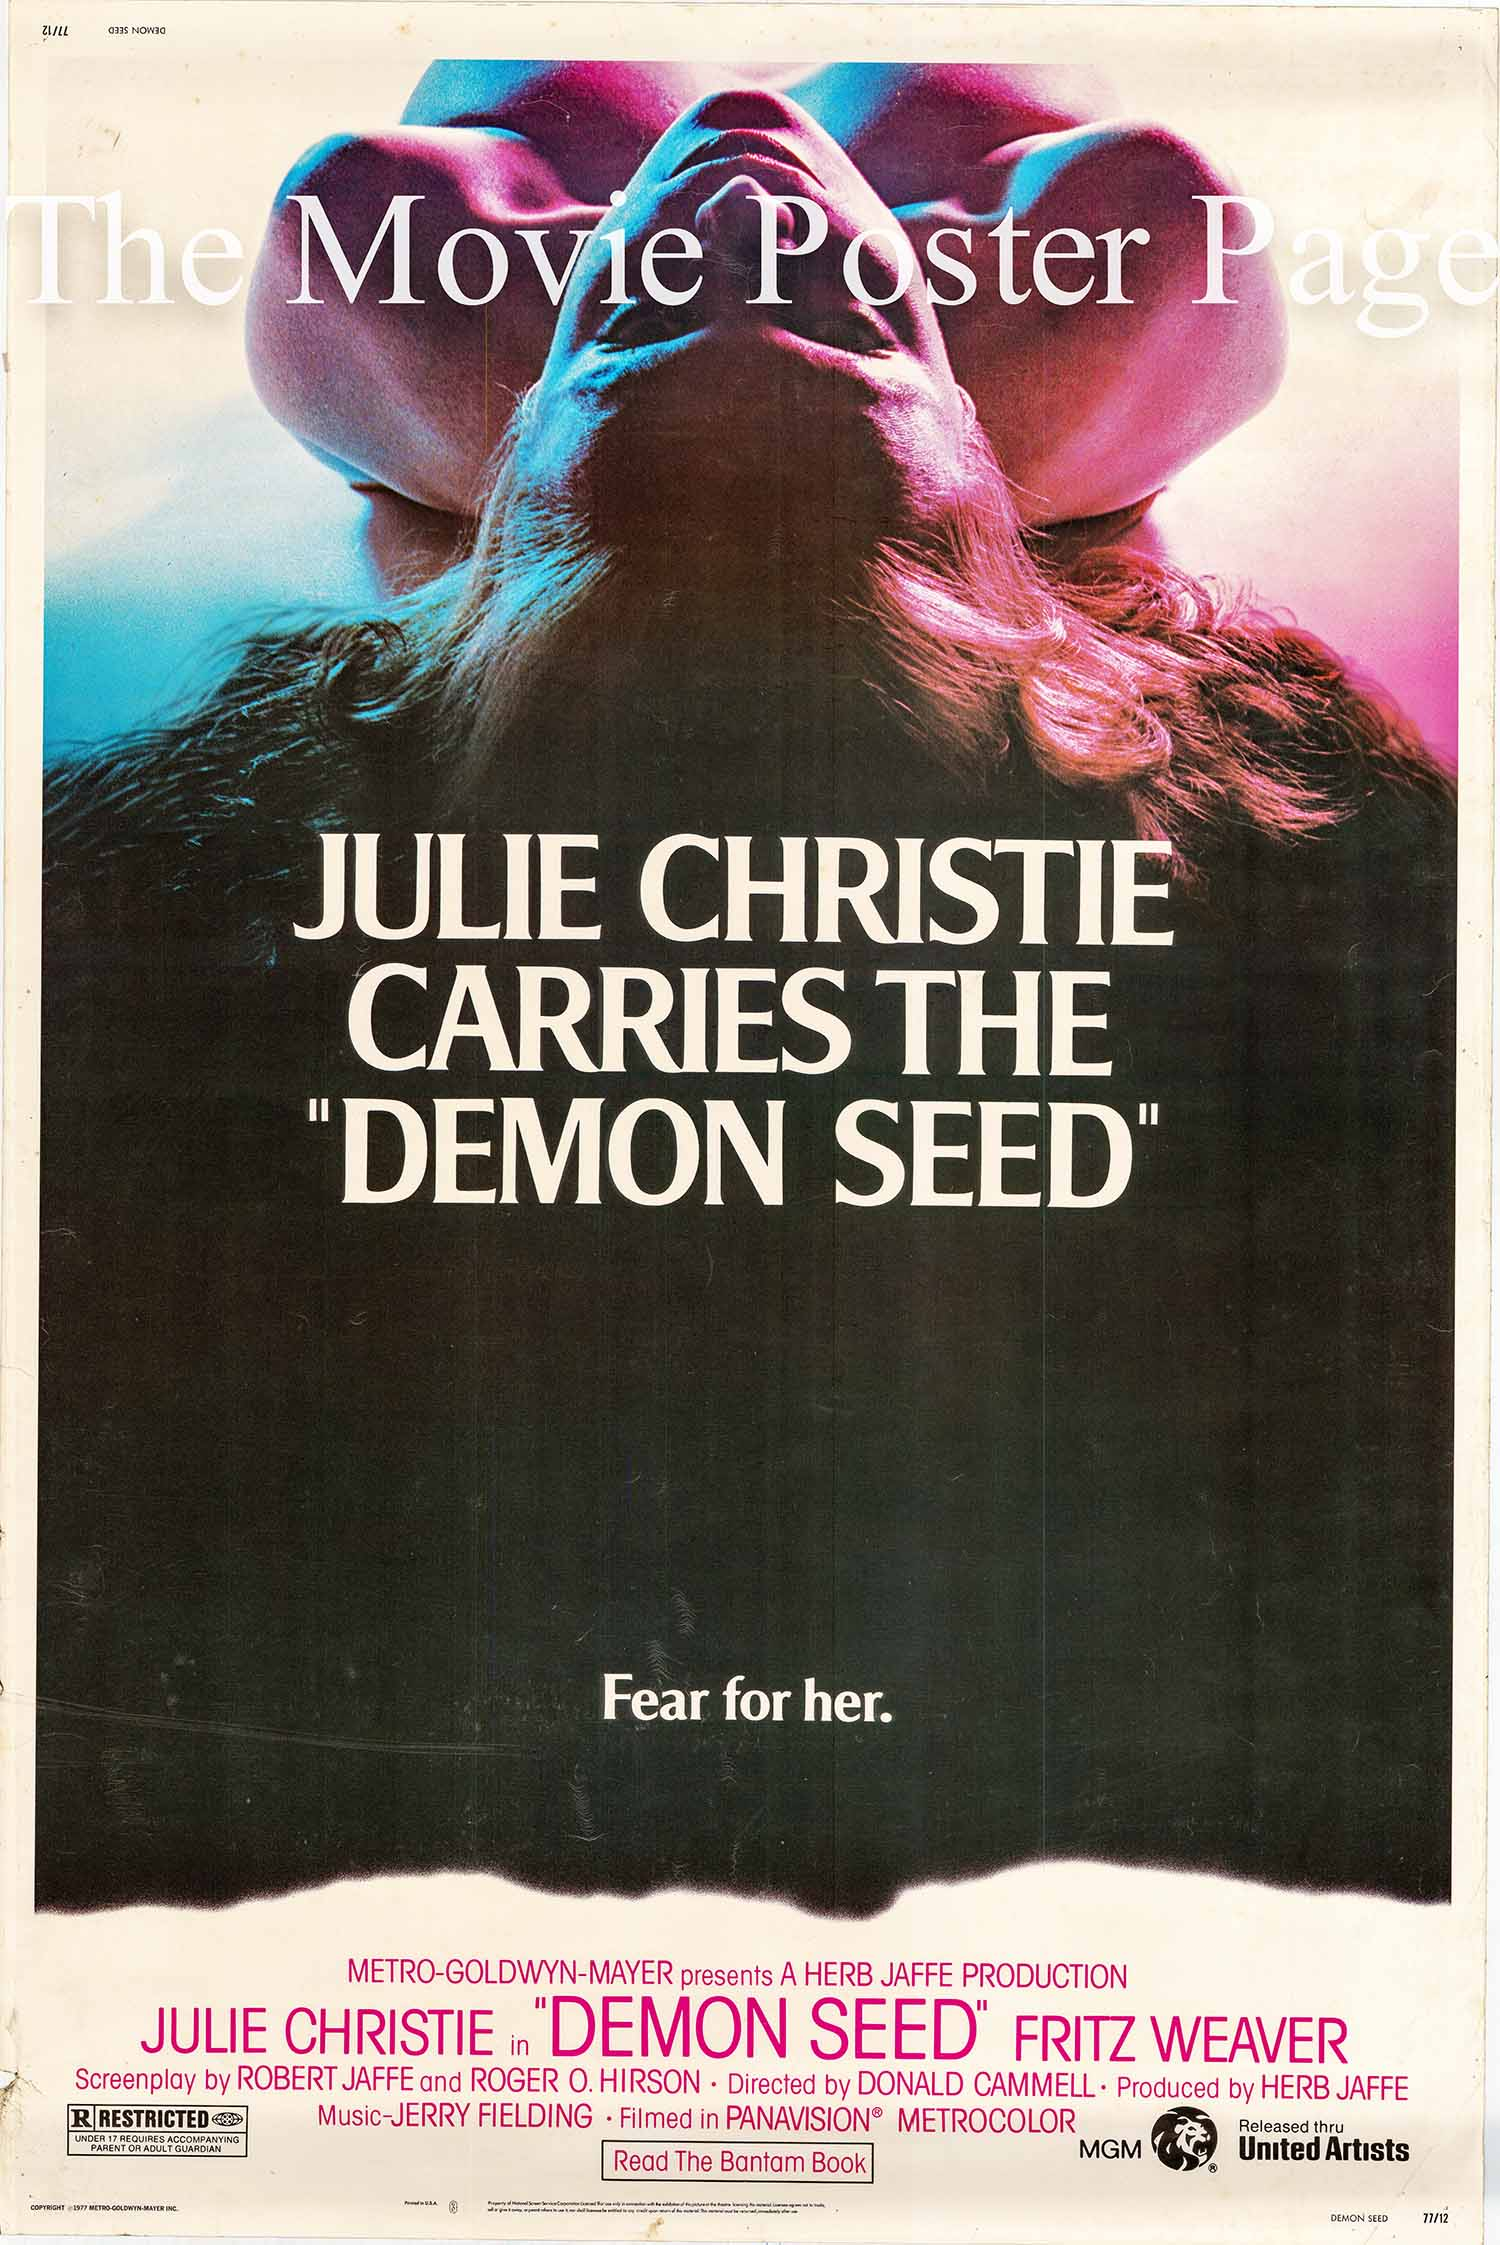 Pictured is a US 40x60 promotional poster for the Donald Cammell film Demon Seed starring Julie Christie.